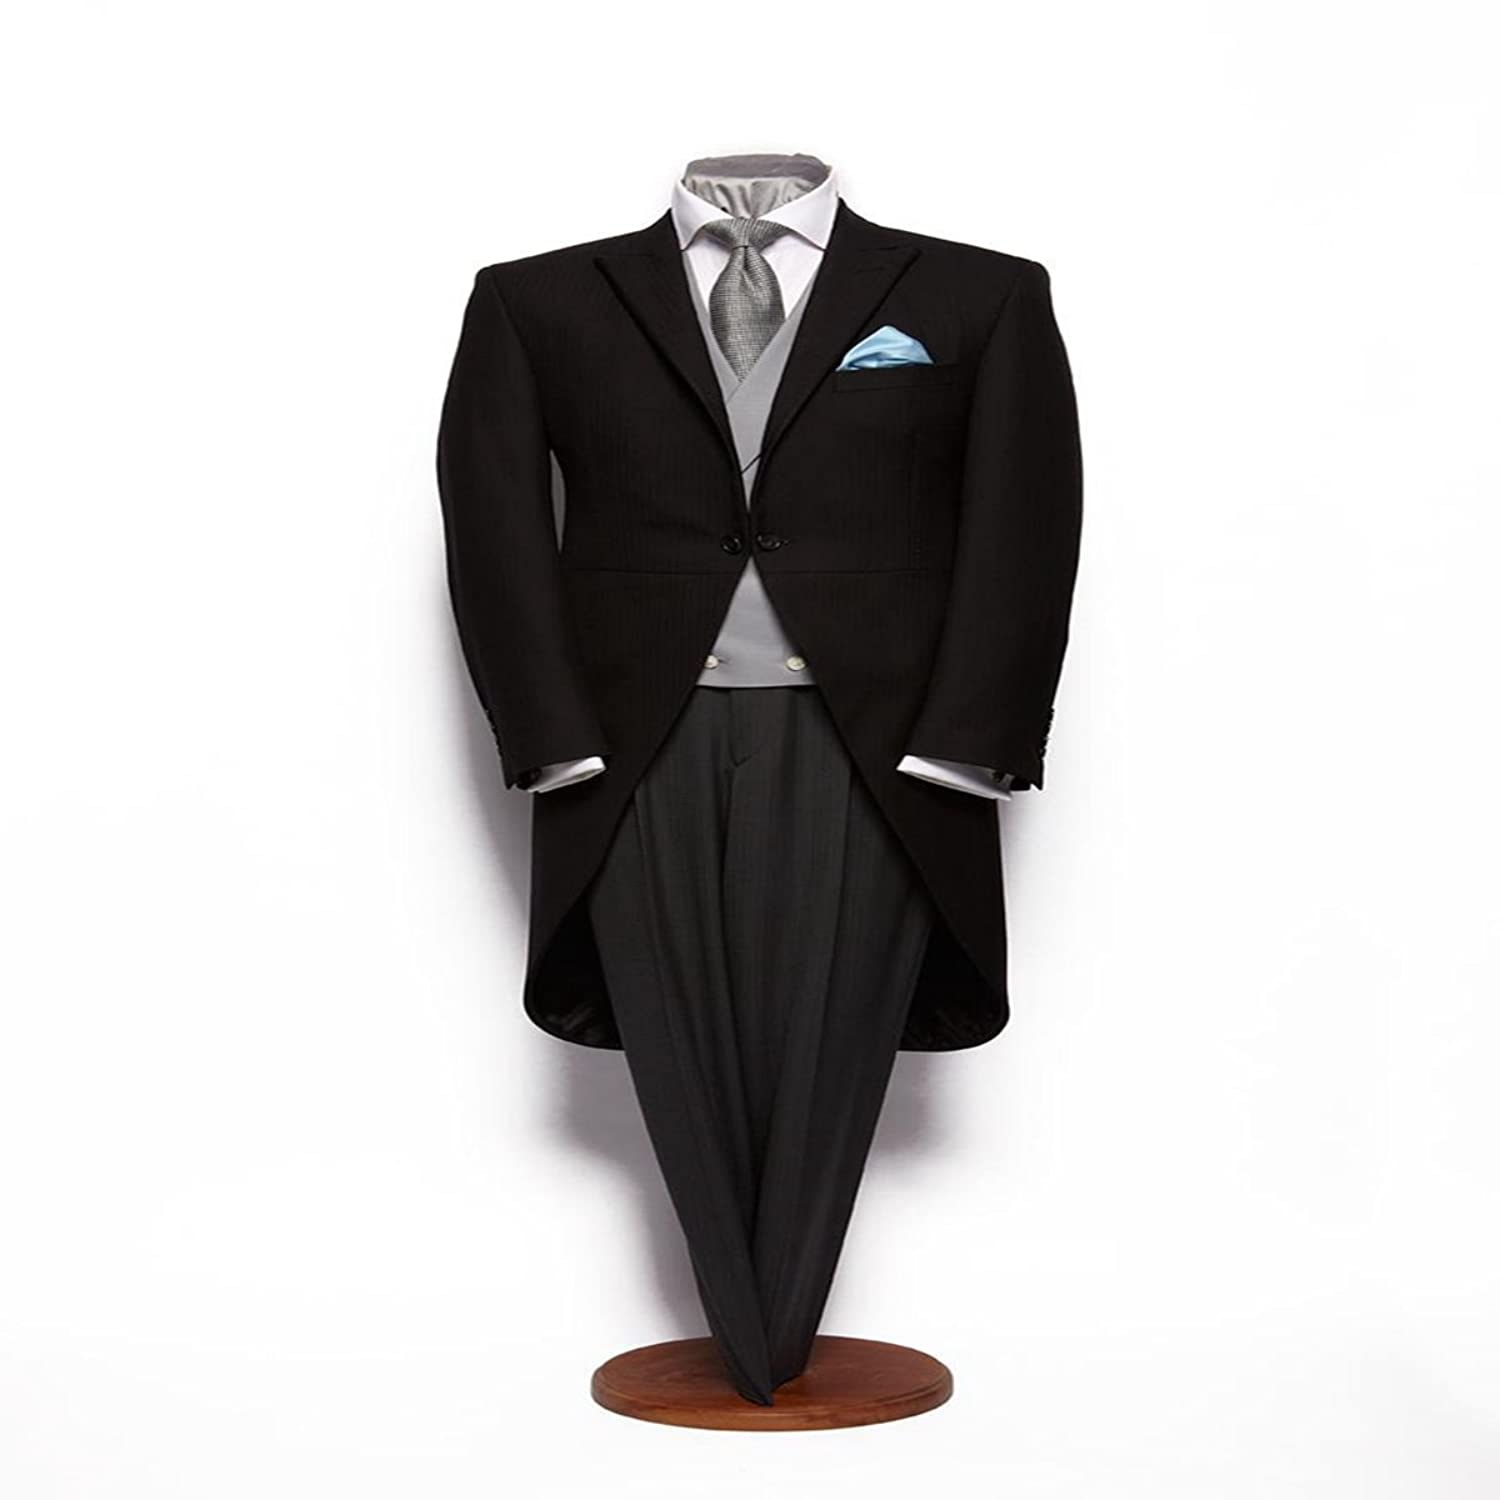 1920s Men's Suits History MLT Mens 3 Pieces Morning Tuxedo Groom Wedding Suits $319.99 AT vintagedancer.com